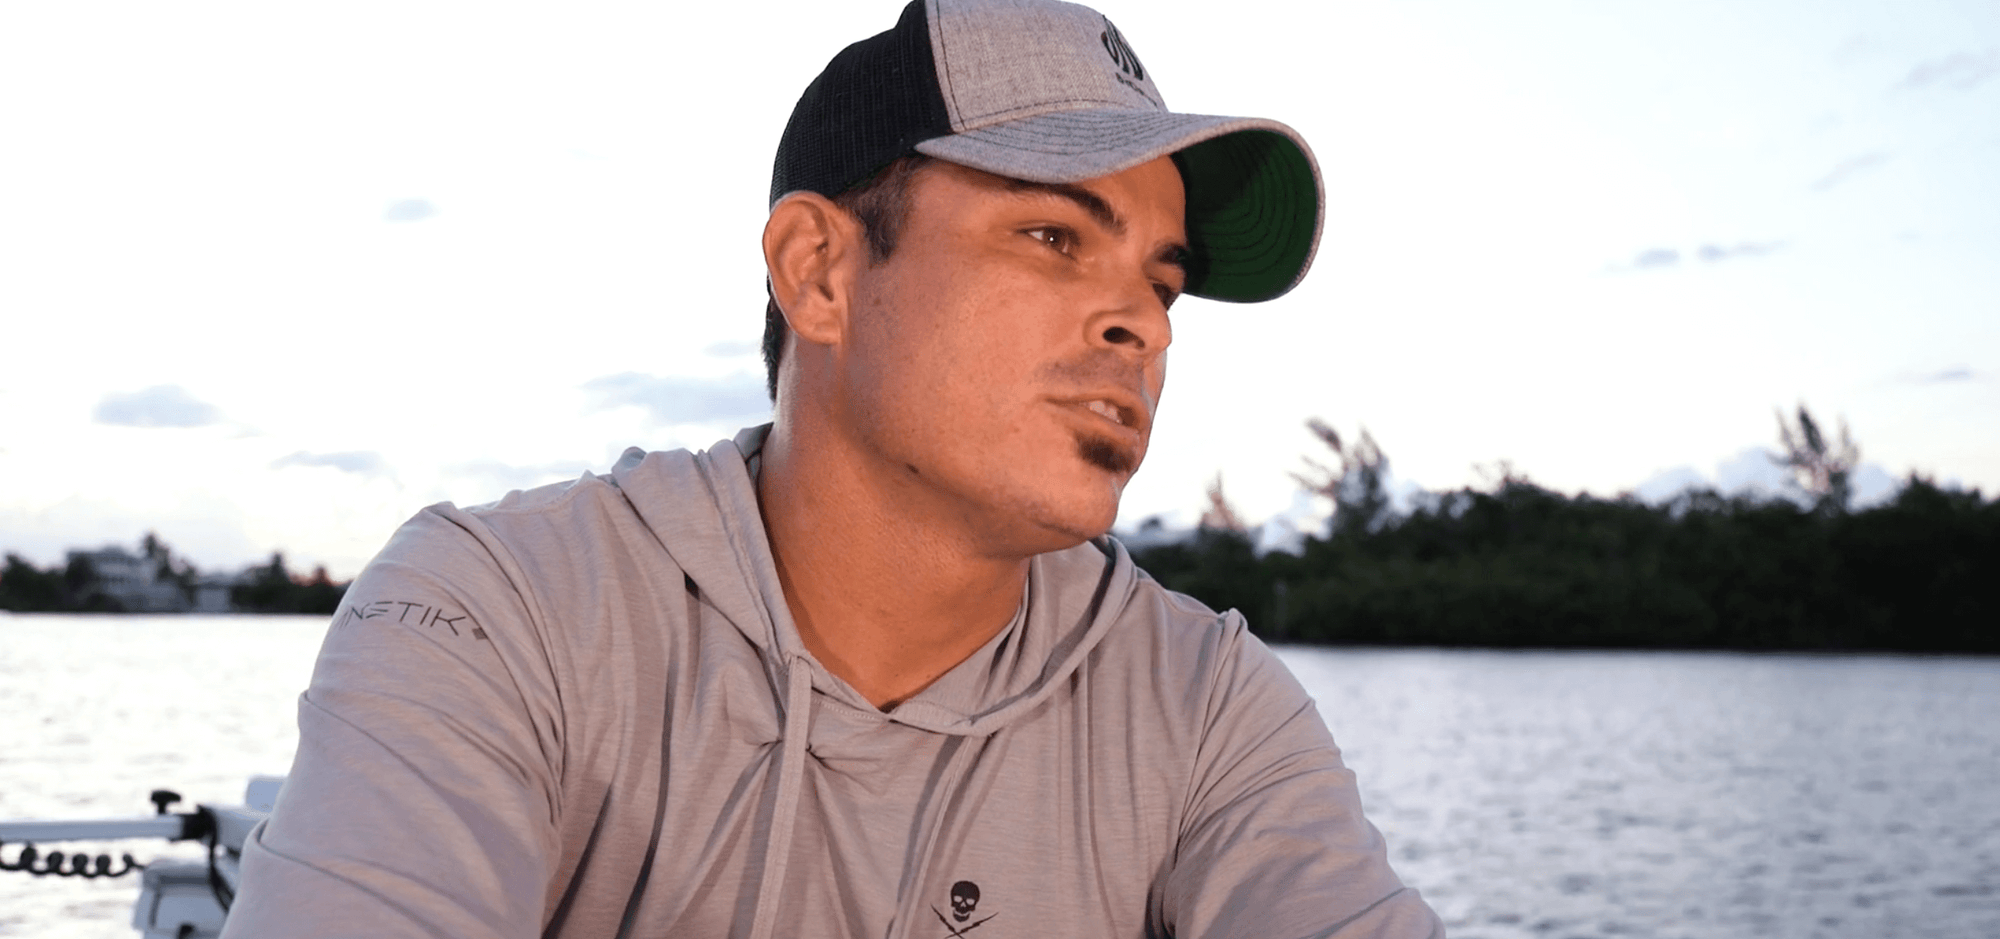 Boating Night Vision Podcast with Captain James Marko of GoliathFishing